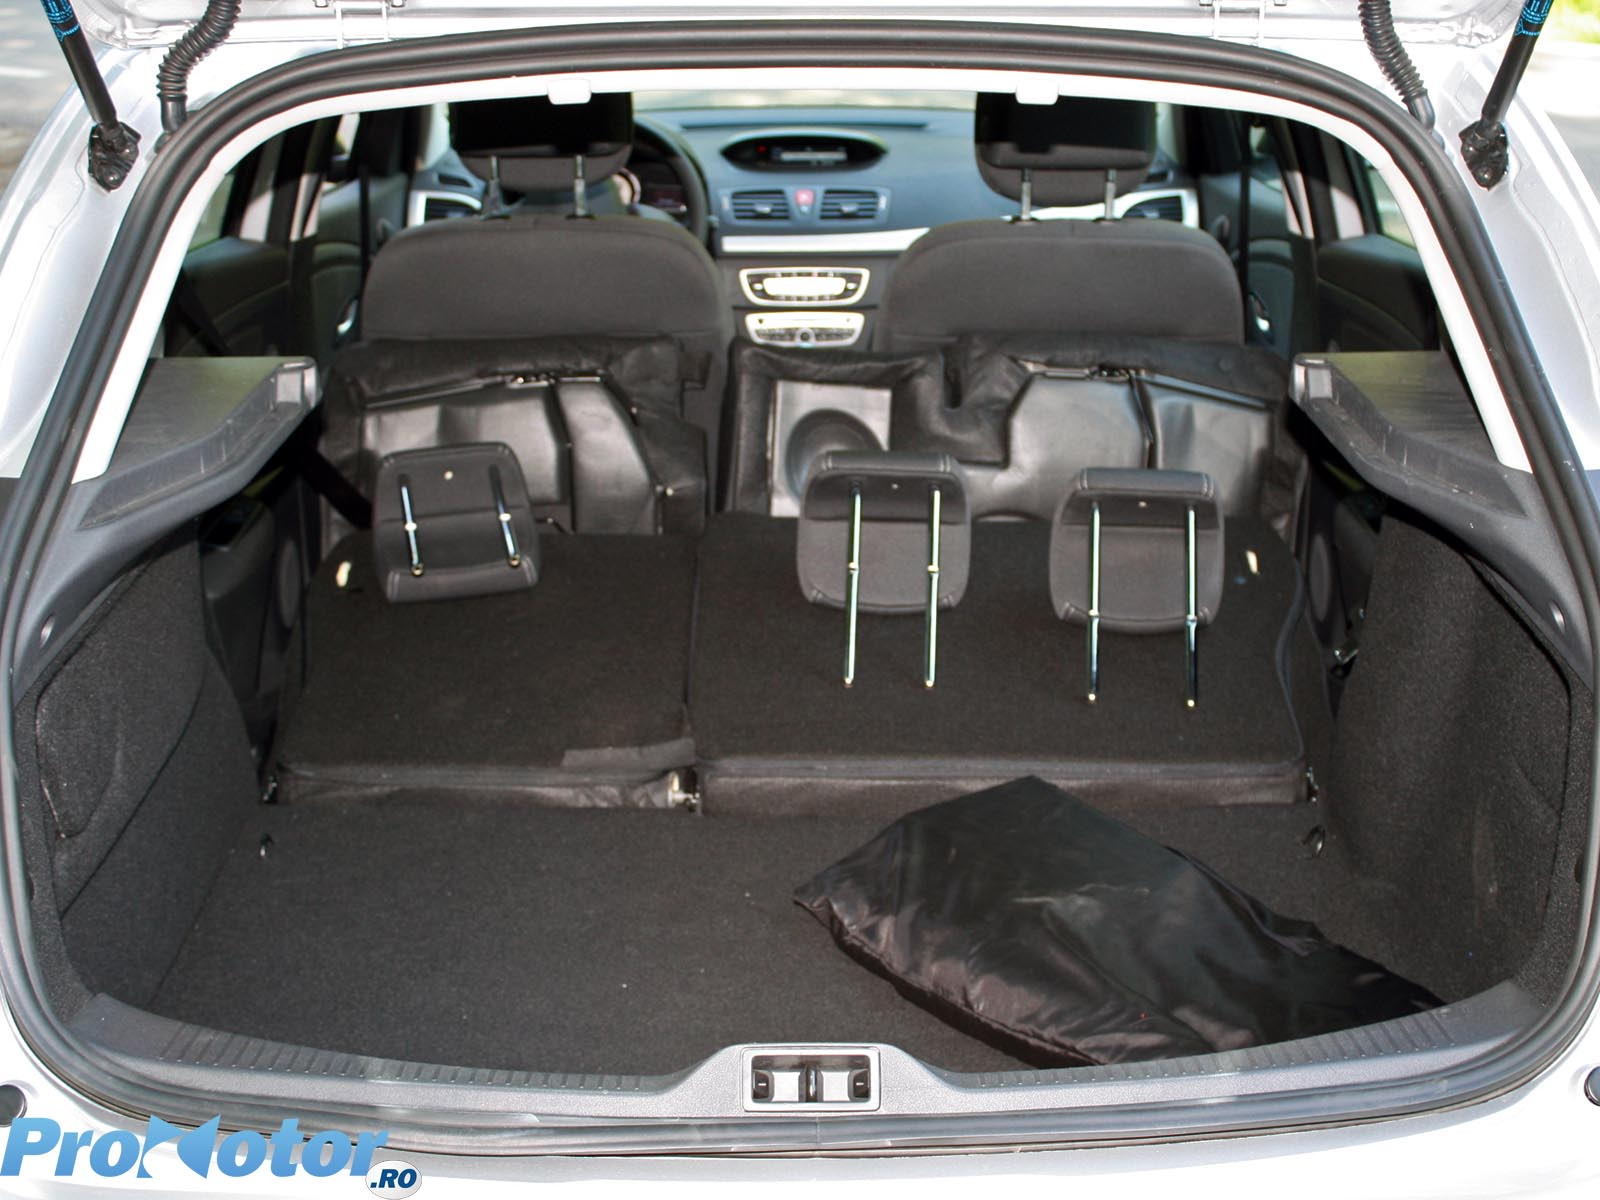 imagini renault megane 1 5 dci 105 cp ep ii interiorul. Black Bedroom Furniture Sets. Home Design Ideas